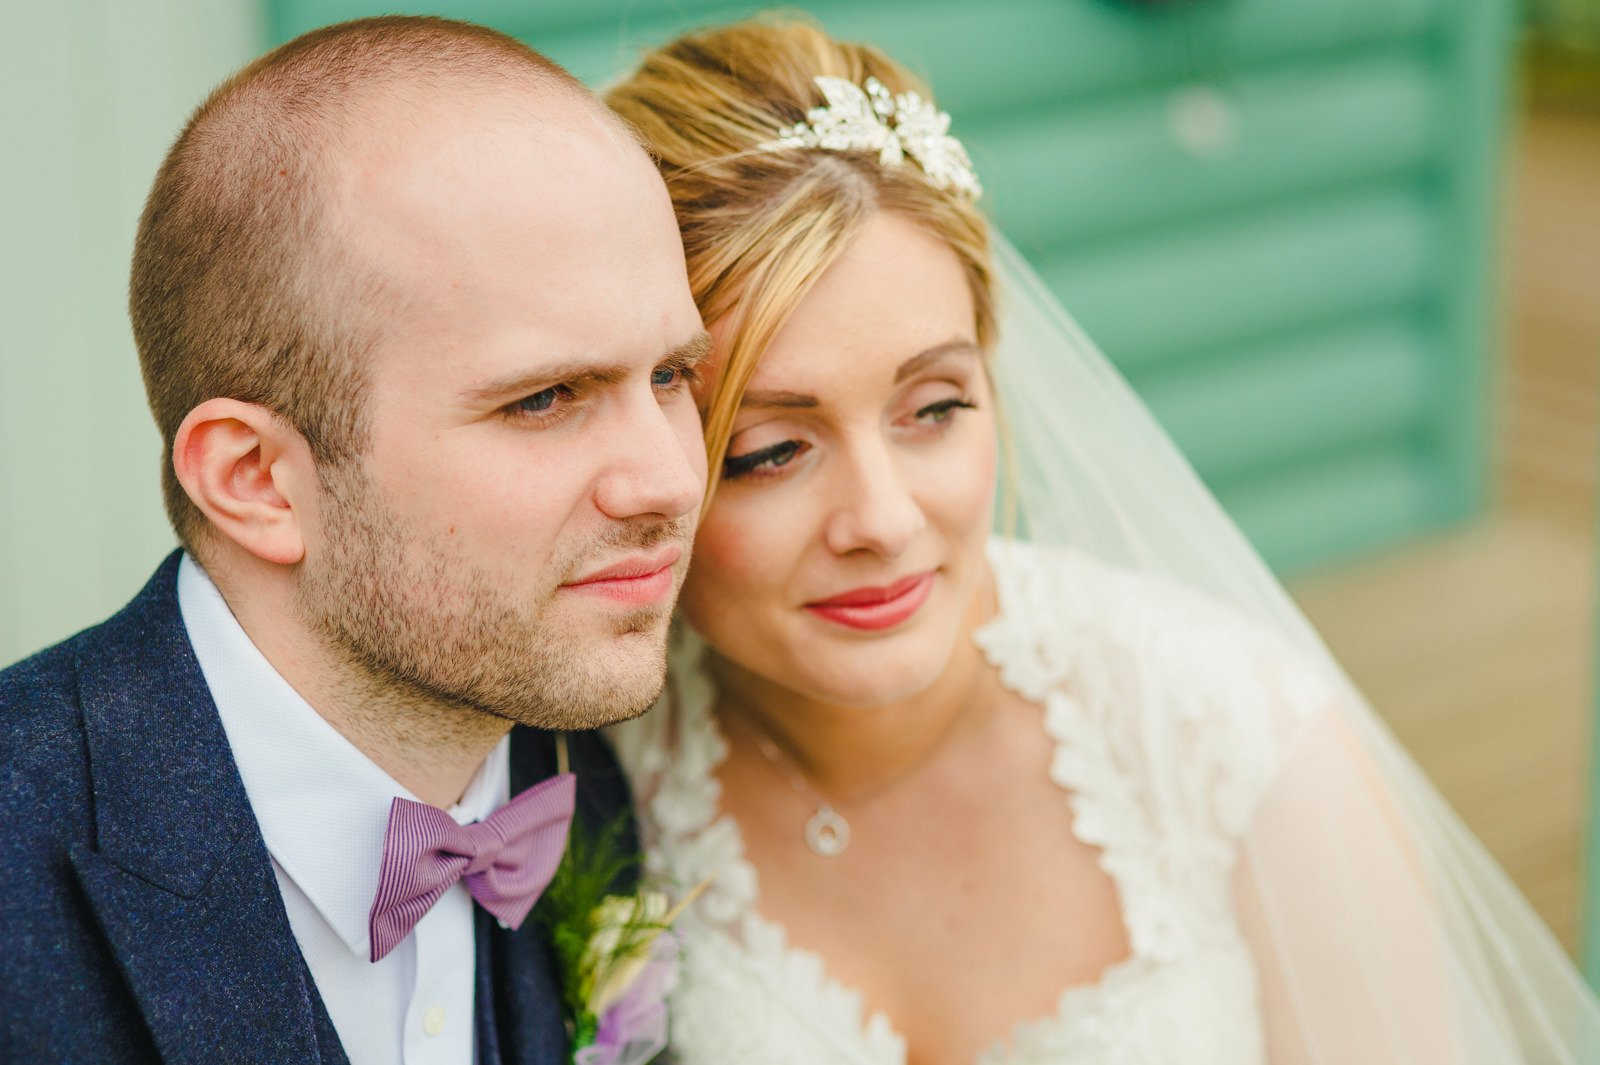 millers of netley wedding 80 - Millers Of Netley wedding, Dorrington, Shrewsbury | Emma + Ben